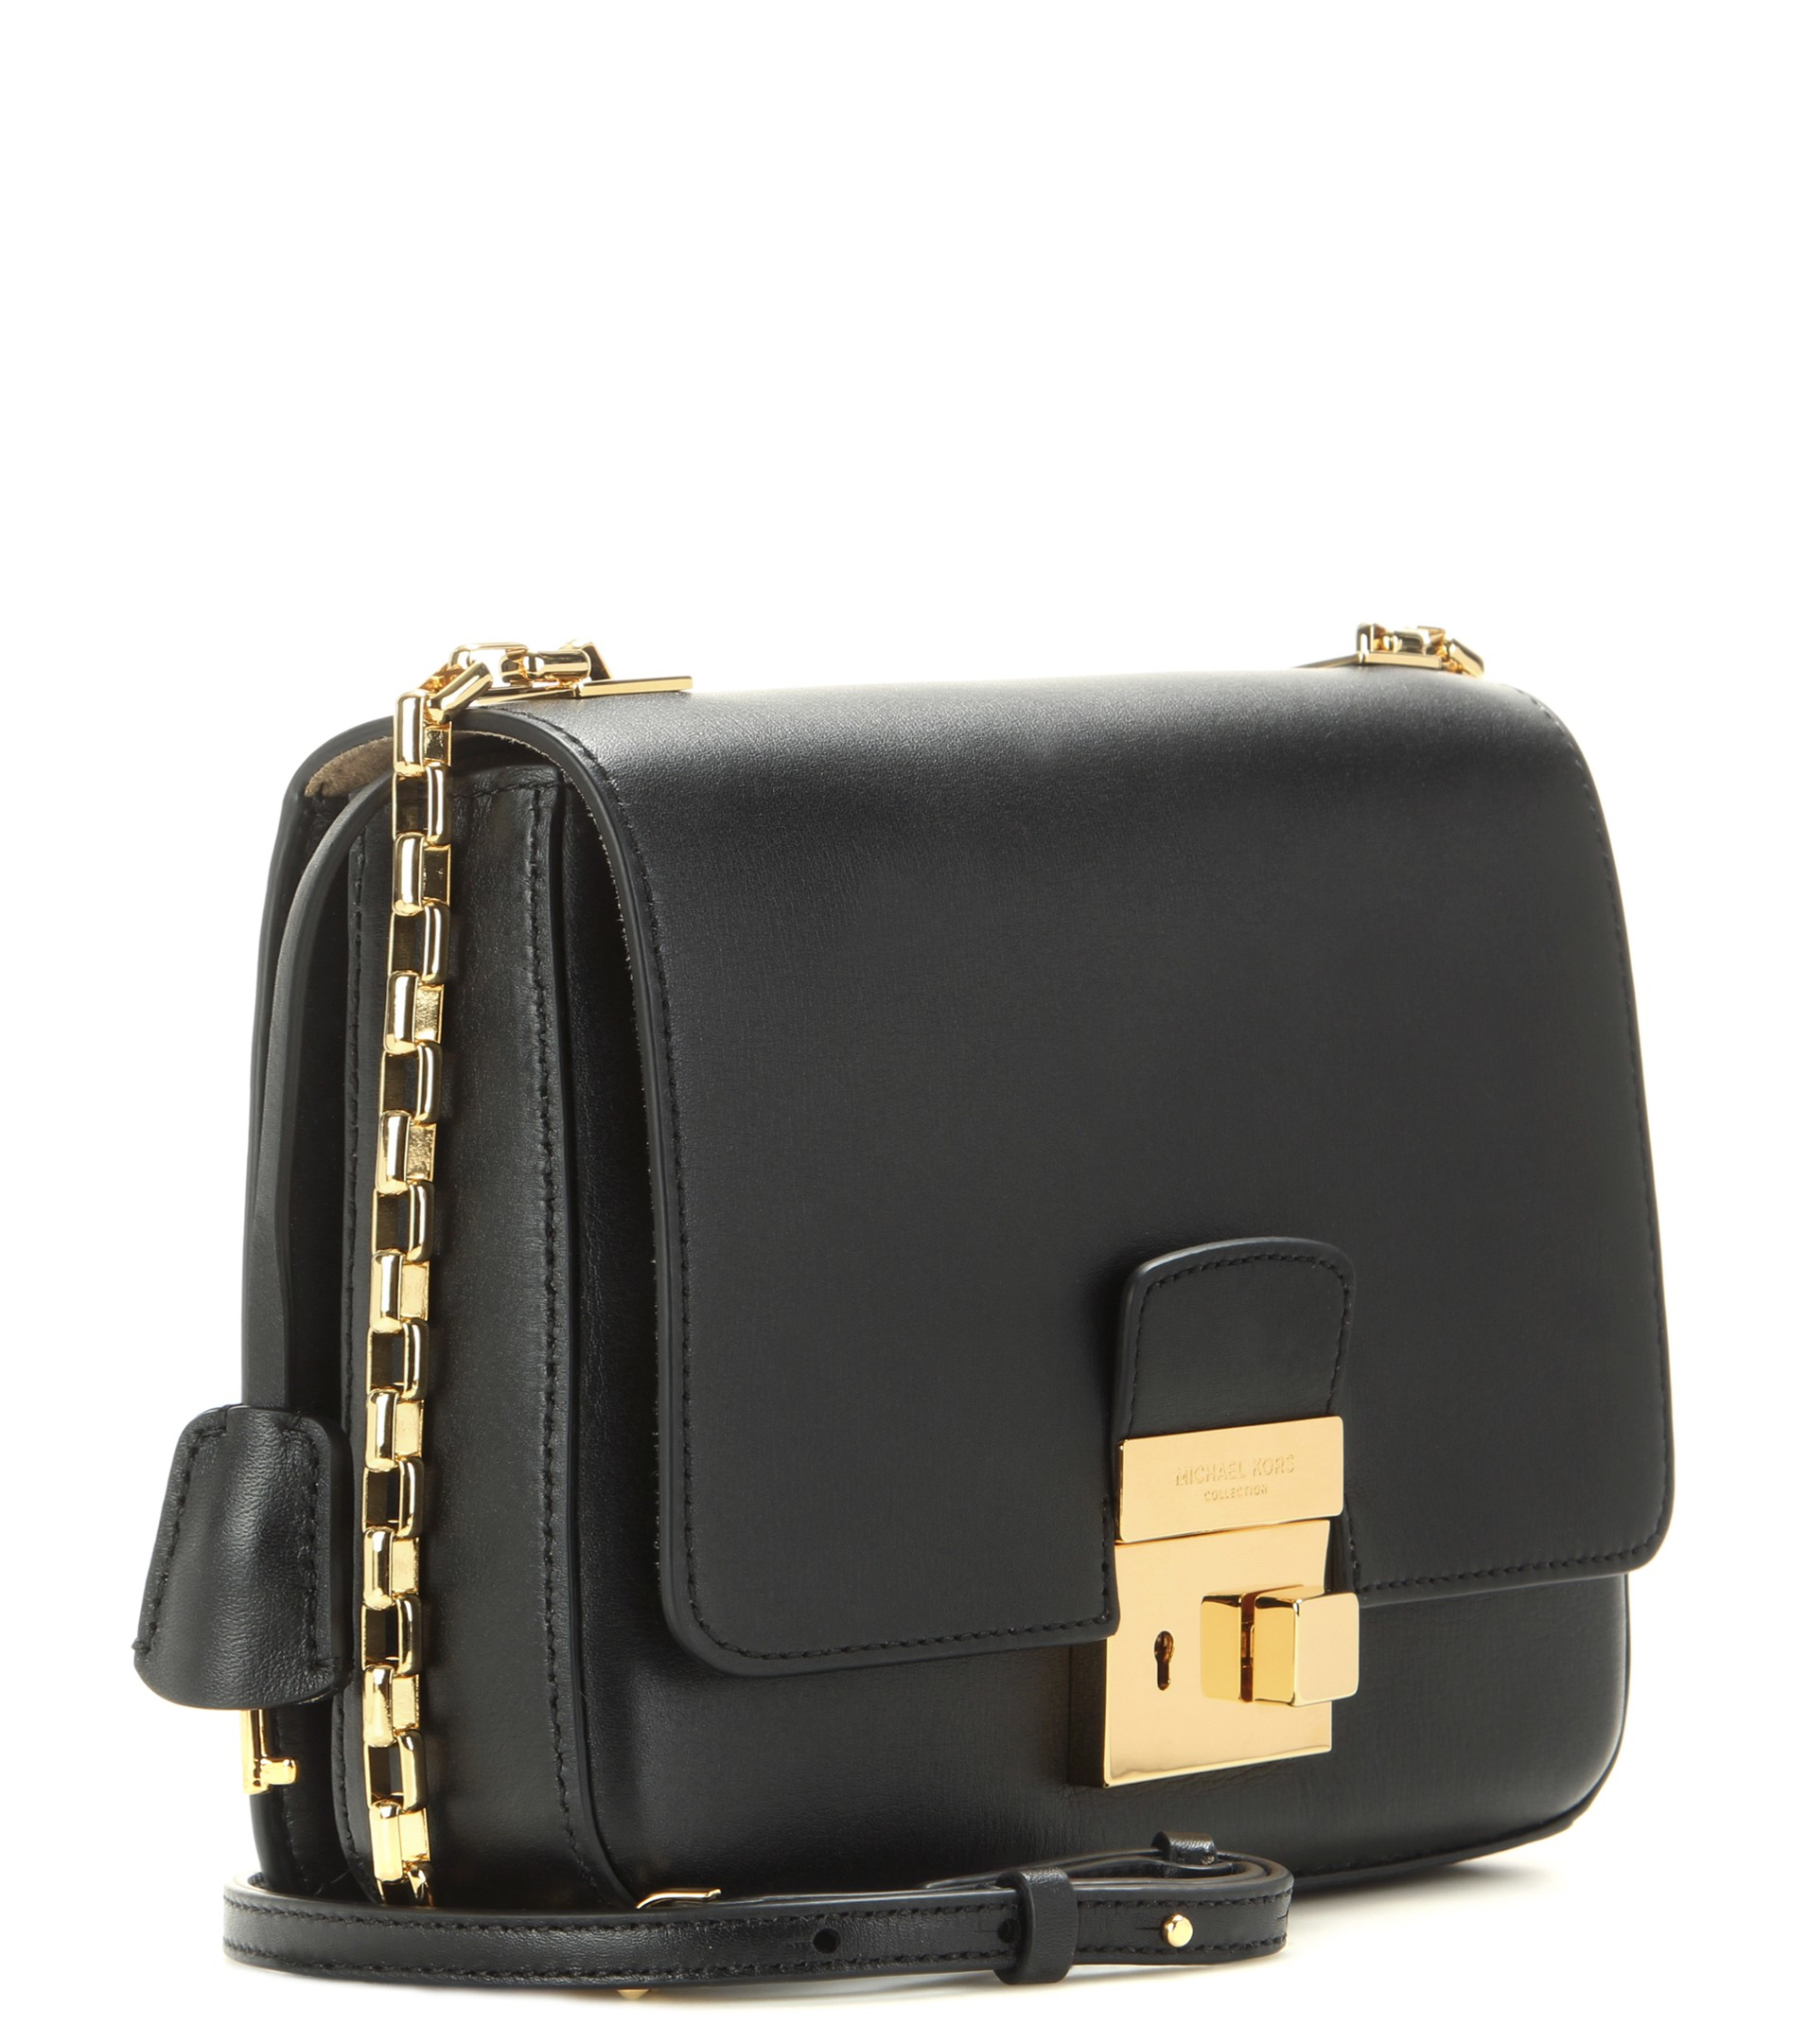 ab4a5e058b4f Lyst - Michael Kors Gia Leather Shoulder Bag in Black